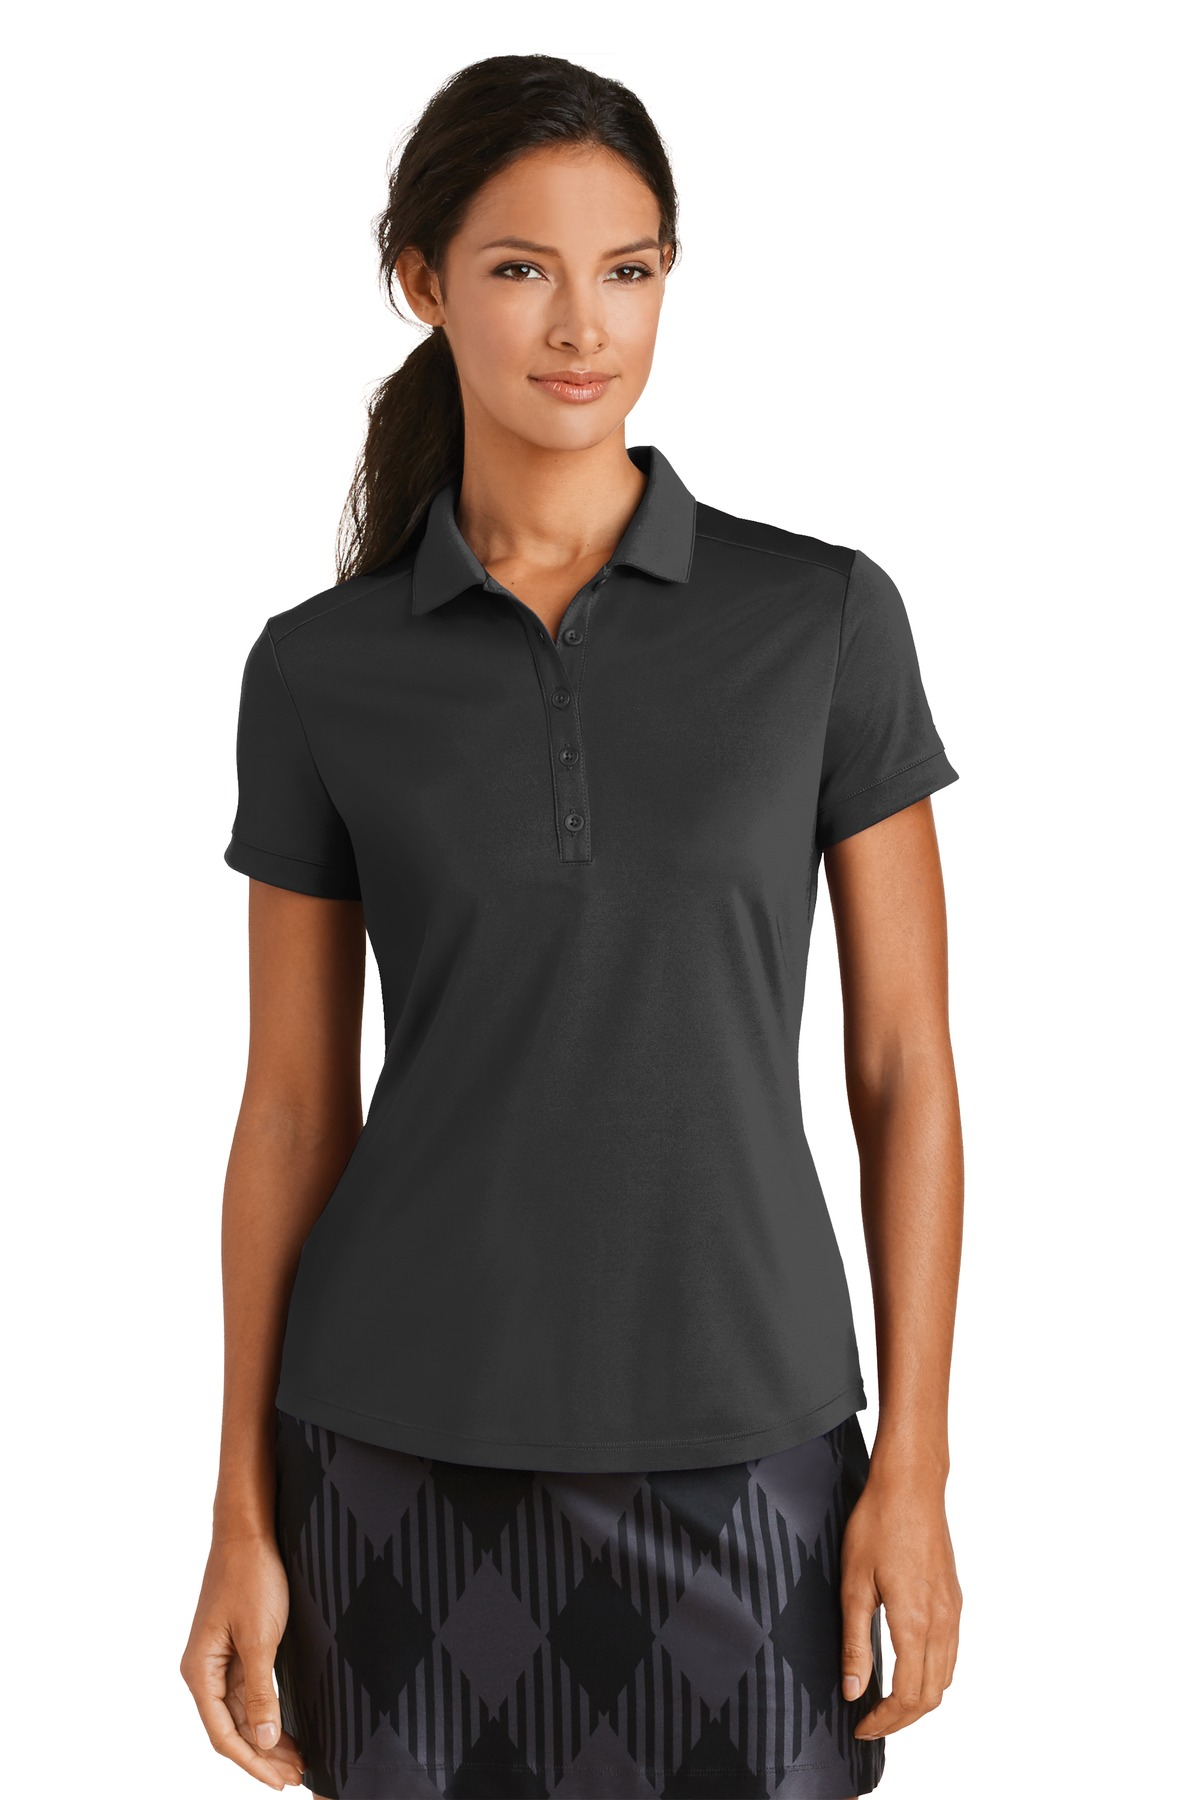 Nike 811807 for Dri fit collar shirts